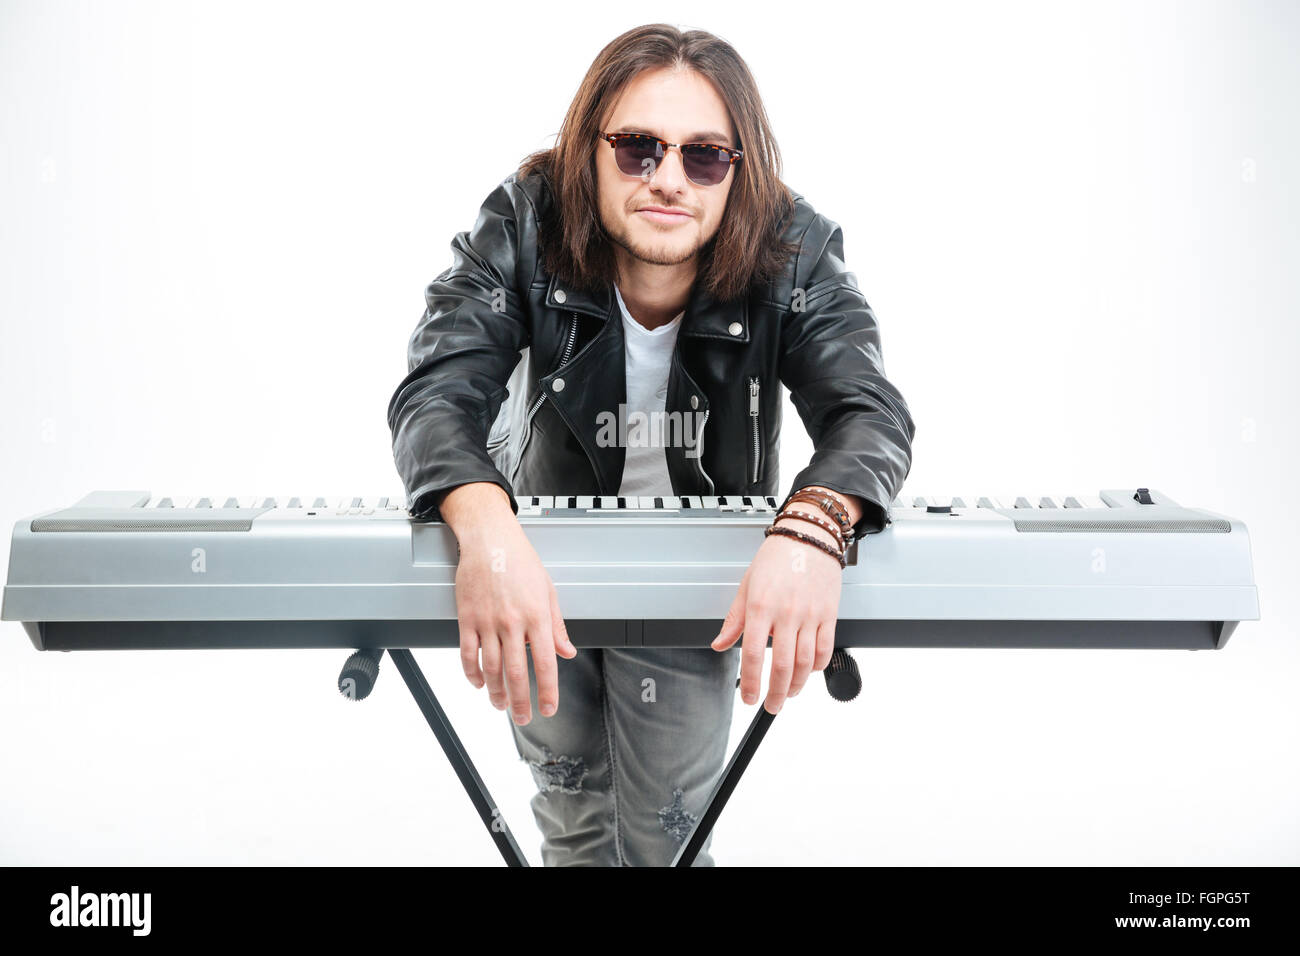 Handsome amusing young man standing and leaning on synthesizer over white background - Stock Image